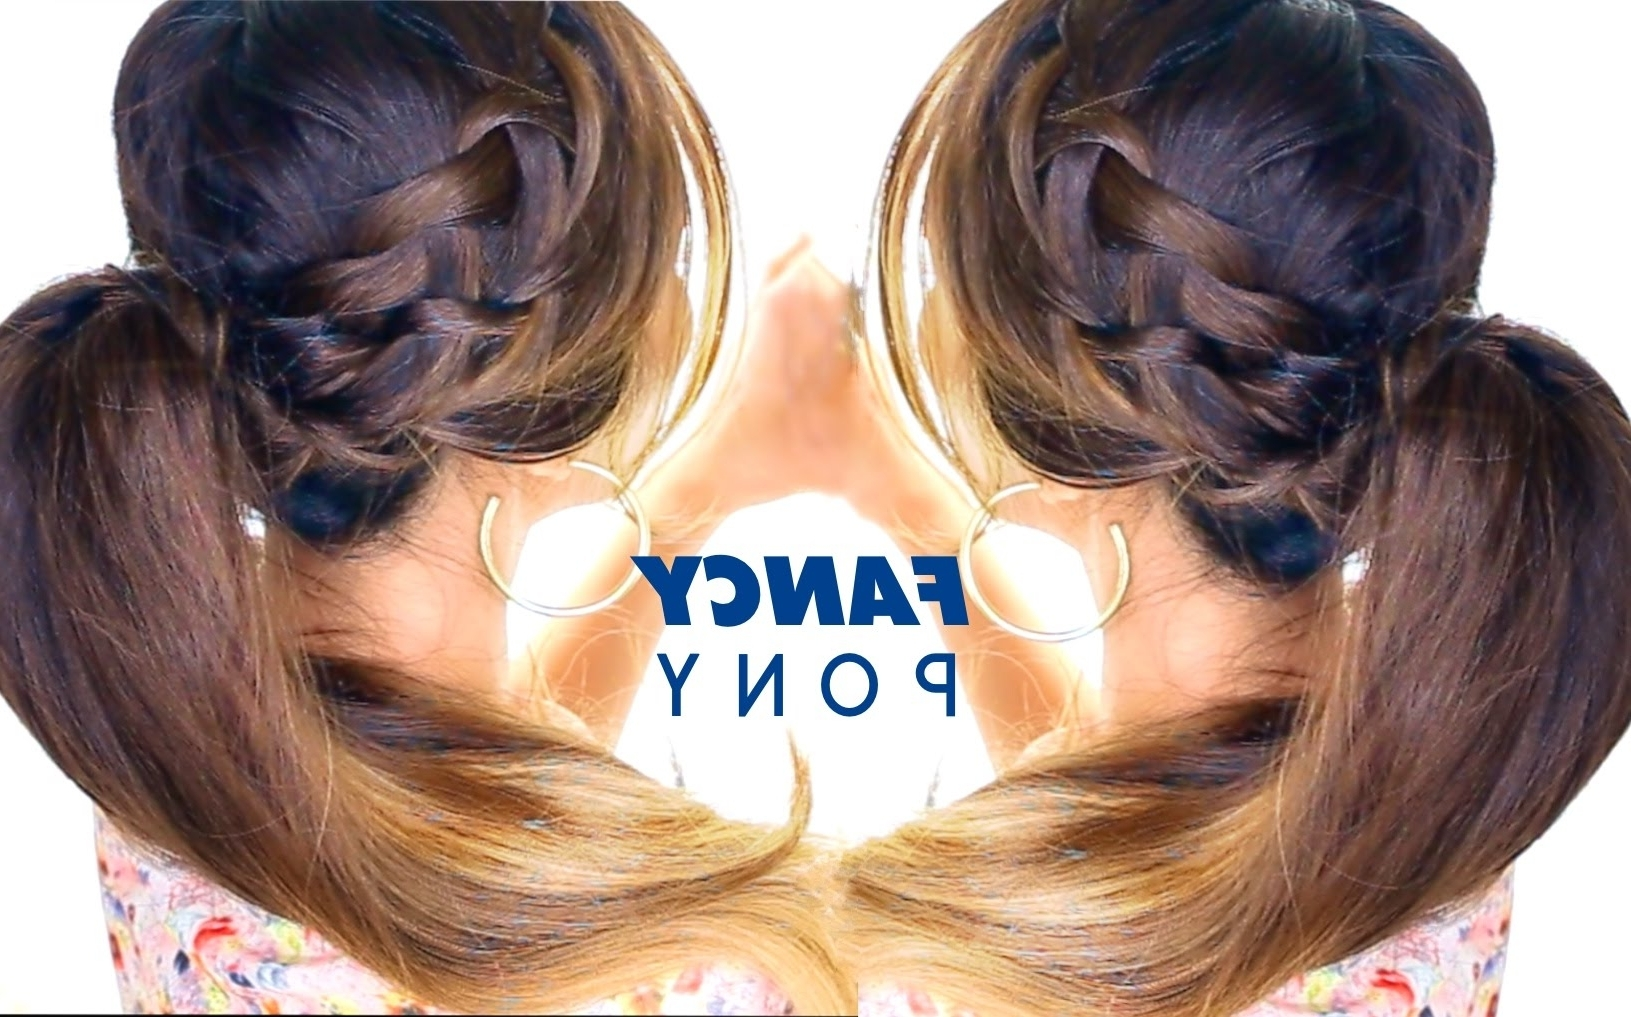 Hair Regarding Trendy Braided Hairstyles Up In A Ponytail (View 7 of 15)